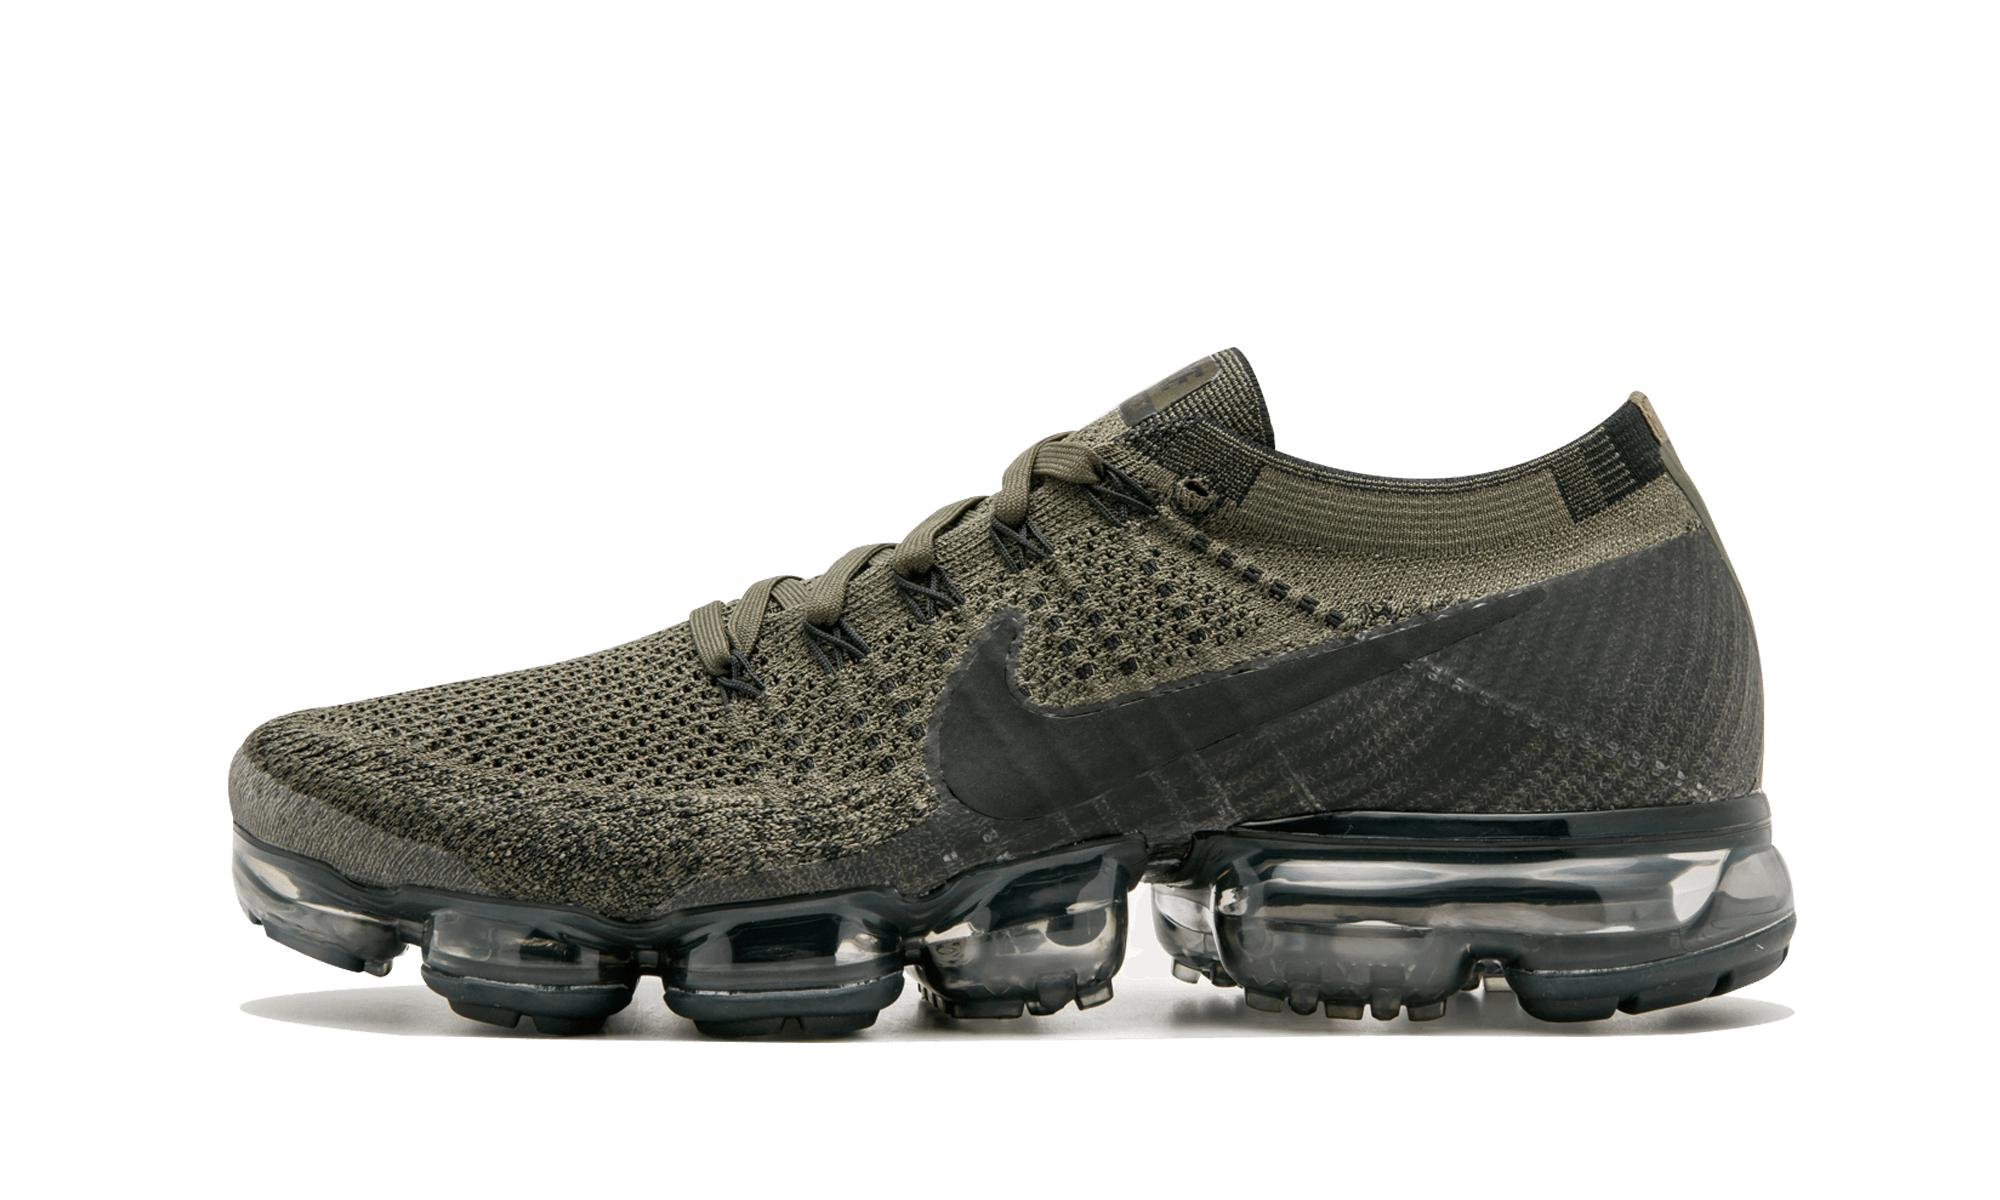 6e7ce256874 Lyst - Nike Air Vapormax Flyknit for Men - Save 10%